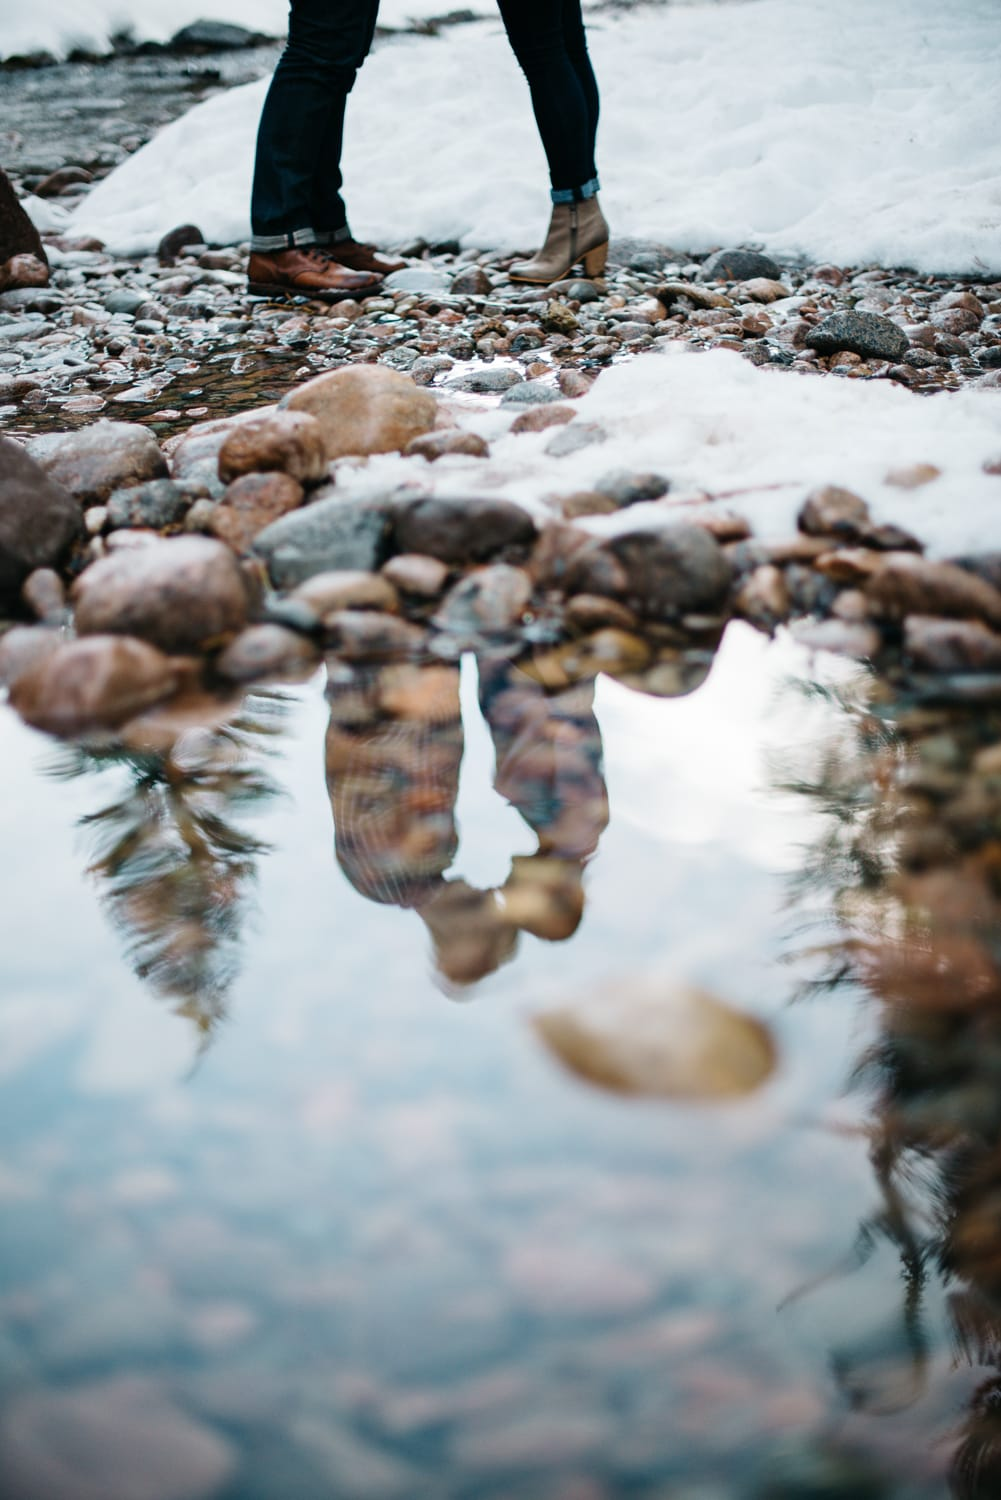 couple's water reflection in riverside during winter in Vail Colorado a good place for weddings or elopements